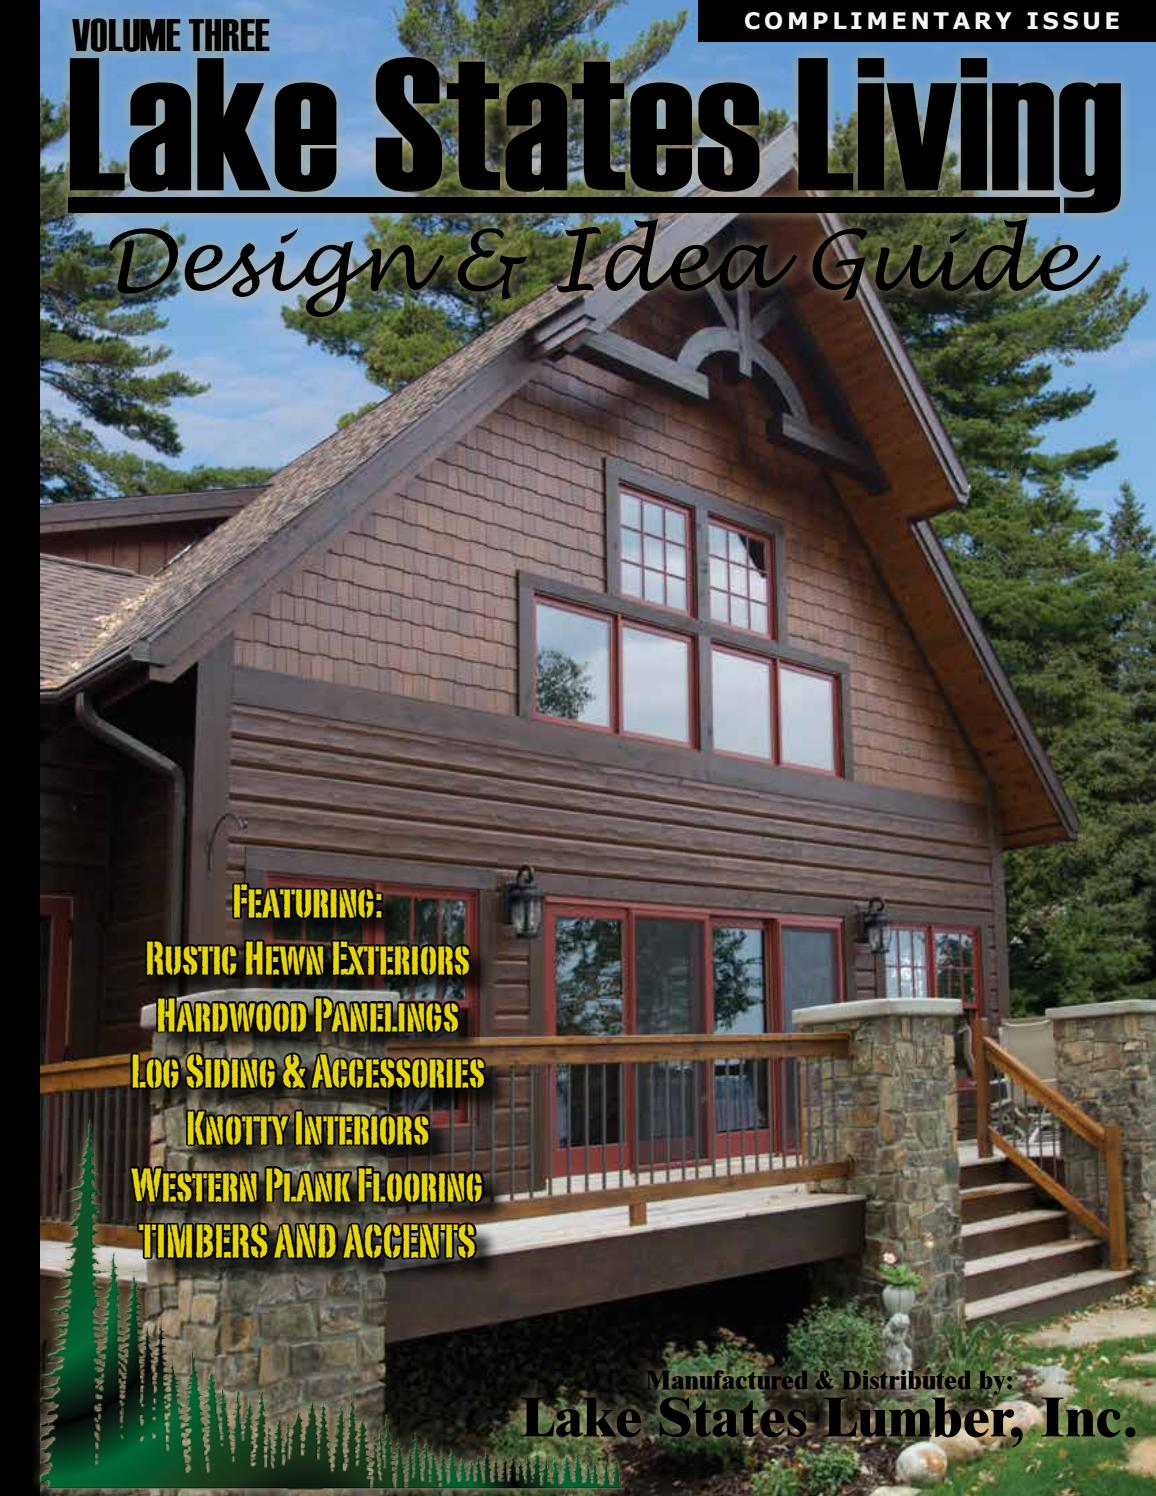 3x8 log siding hand hewn pine - Lake States Living Volume 3 By Cedar Creek Wholesale Lumber And Building Materials Issuu